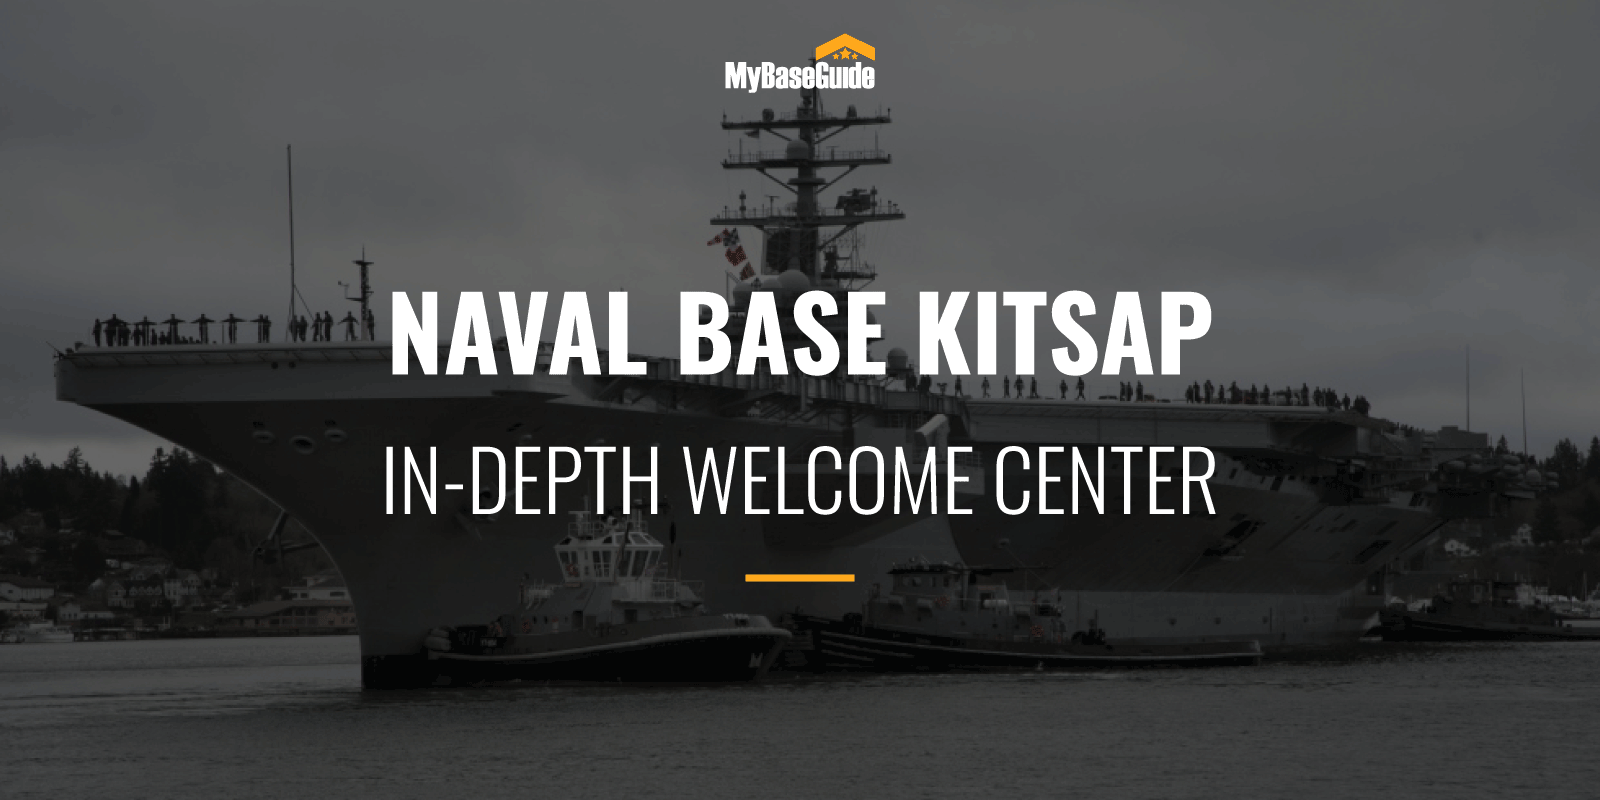 NB Kitsap In-Depth Welcome Center